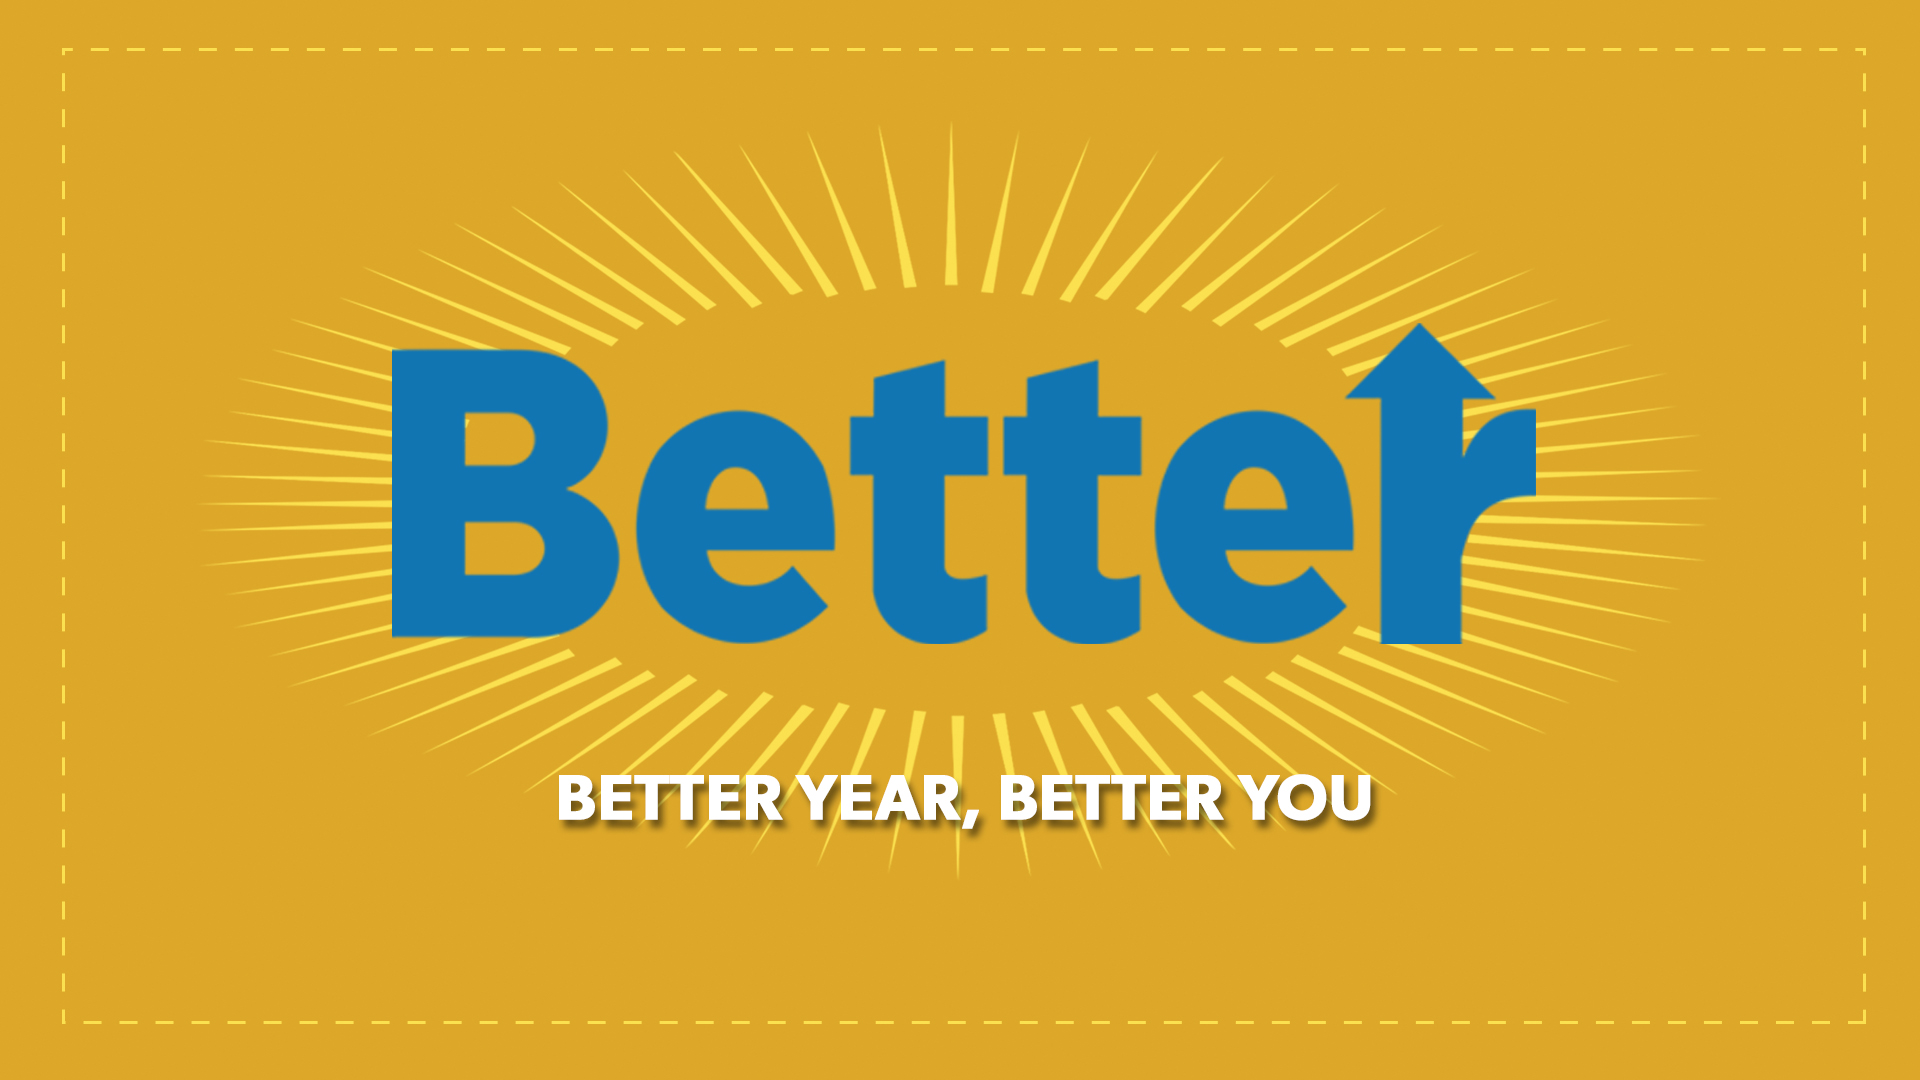 Better   #Blessed   What if this year wasn't about becoming new, but being better? A better year starts with a better you. So let's make this year the best you yet.